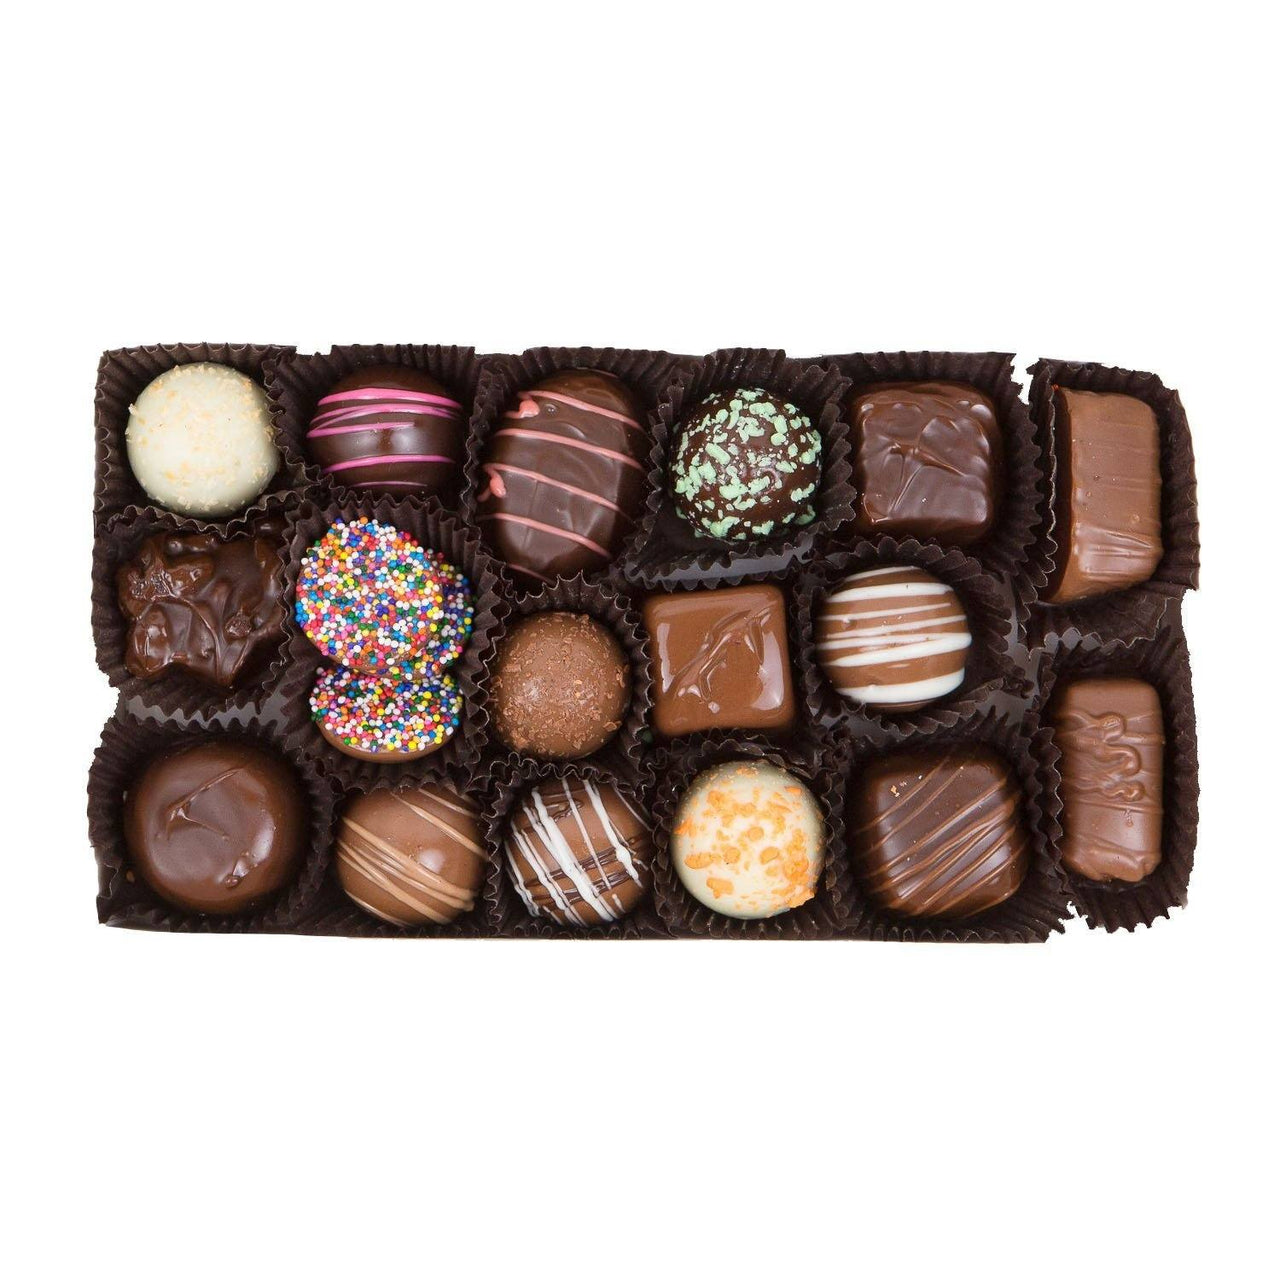 Gifts for Boss - Chocolate Assortment Gift Box - Jackie's Chocolate (4336489889907)